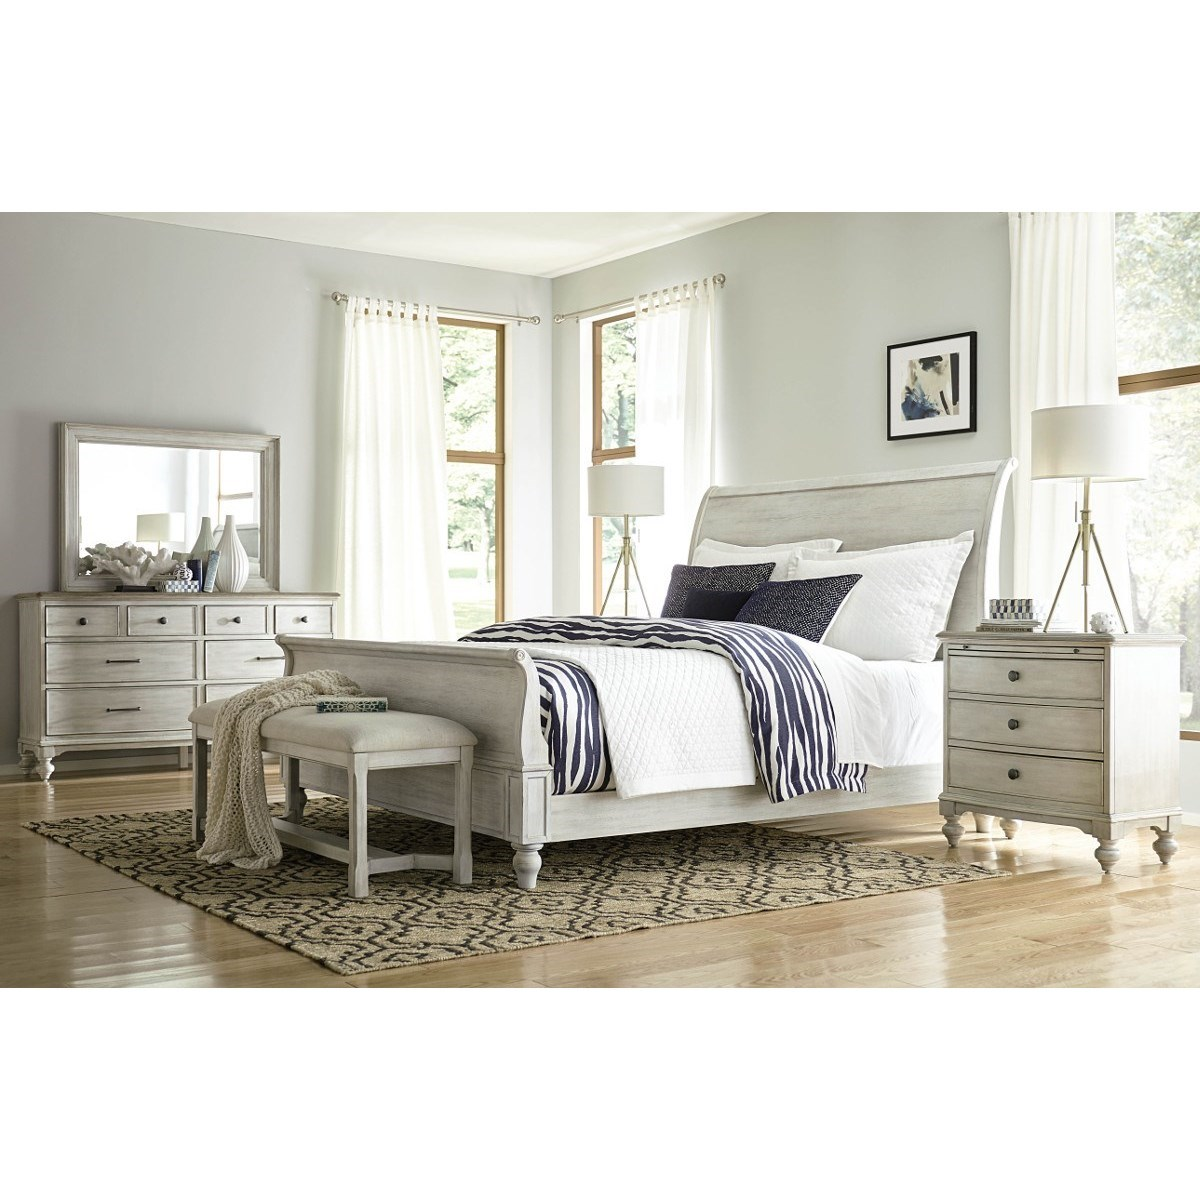 Litchfield King Bedroom Group by American Drew at Alison Craig Home Furnishings